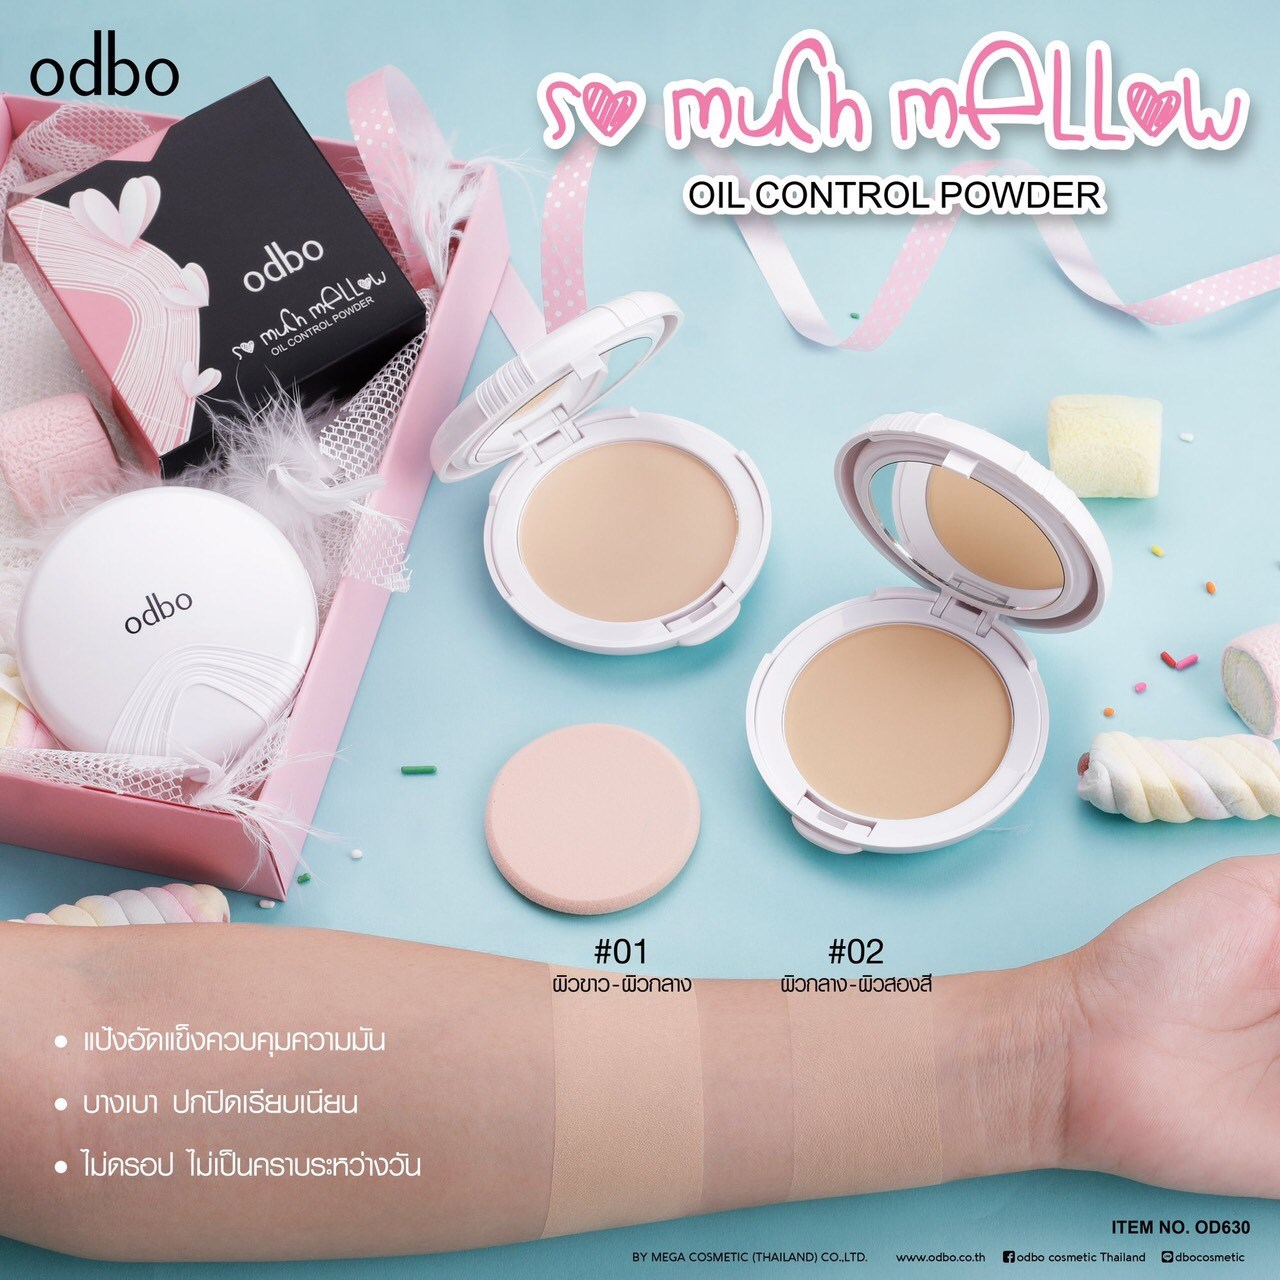 ODBO oil control powder